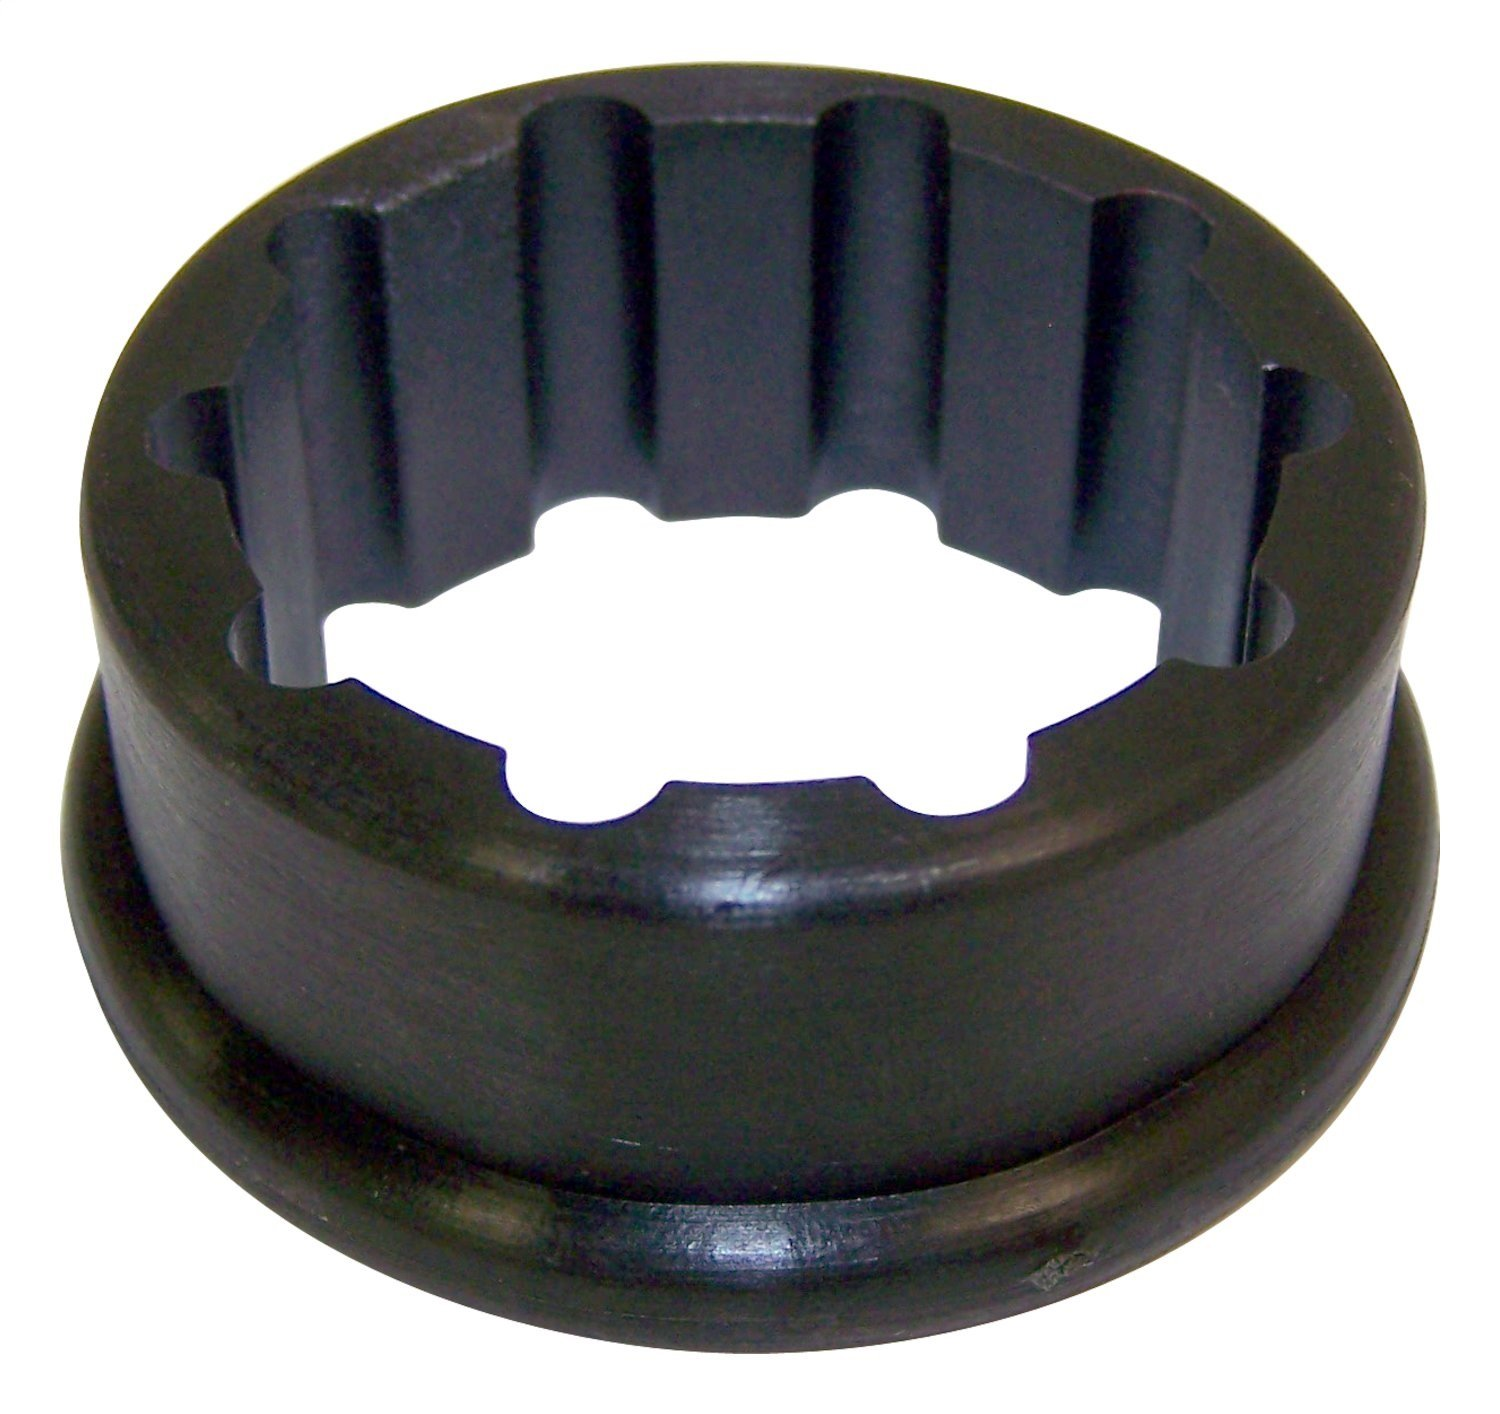 Crown Automotive 5252687 Intermediate Shaft Collar